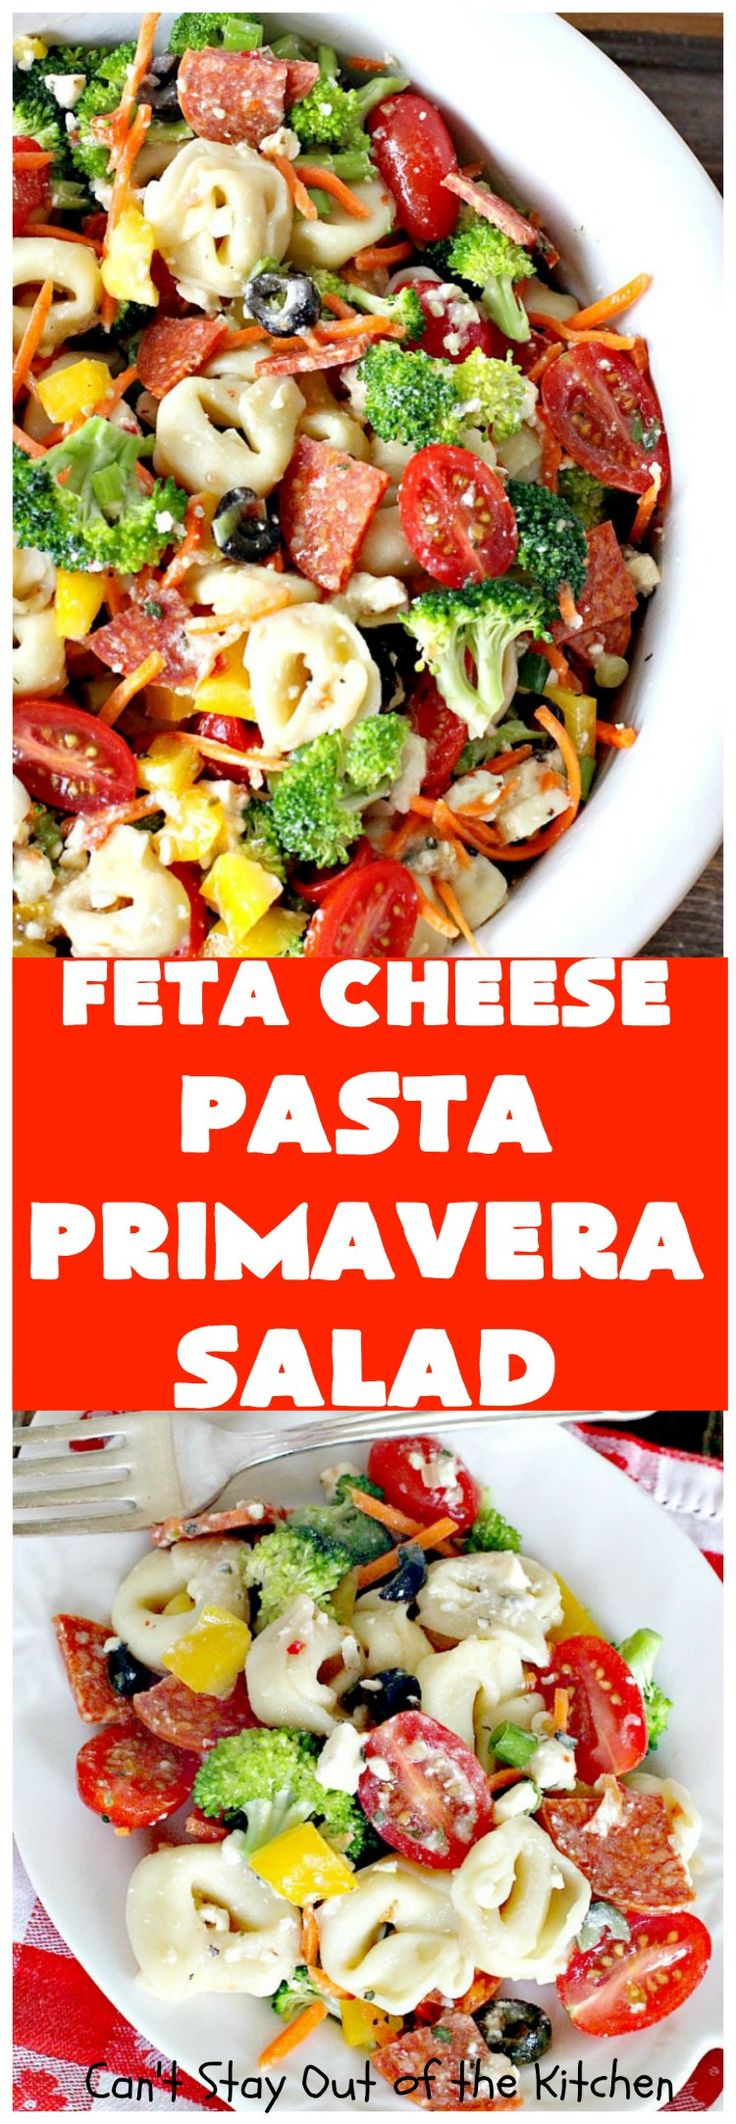 Feta Cheese Pasta Primavera Salad | Can't Stay Out of the Kitchen | this delightful #pasta #salad is great for #tailgating parties, potlucks or any backyard #BBQ. #tortellini #pepperoni #olives #broccoli #tomatoes